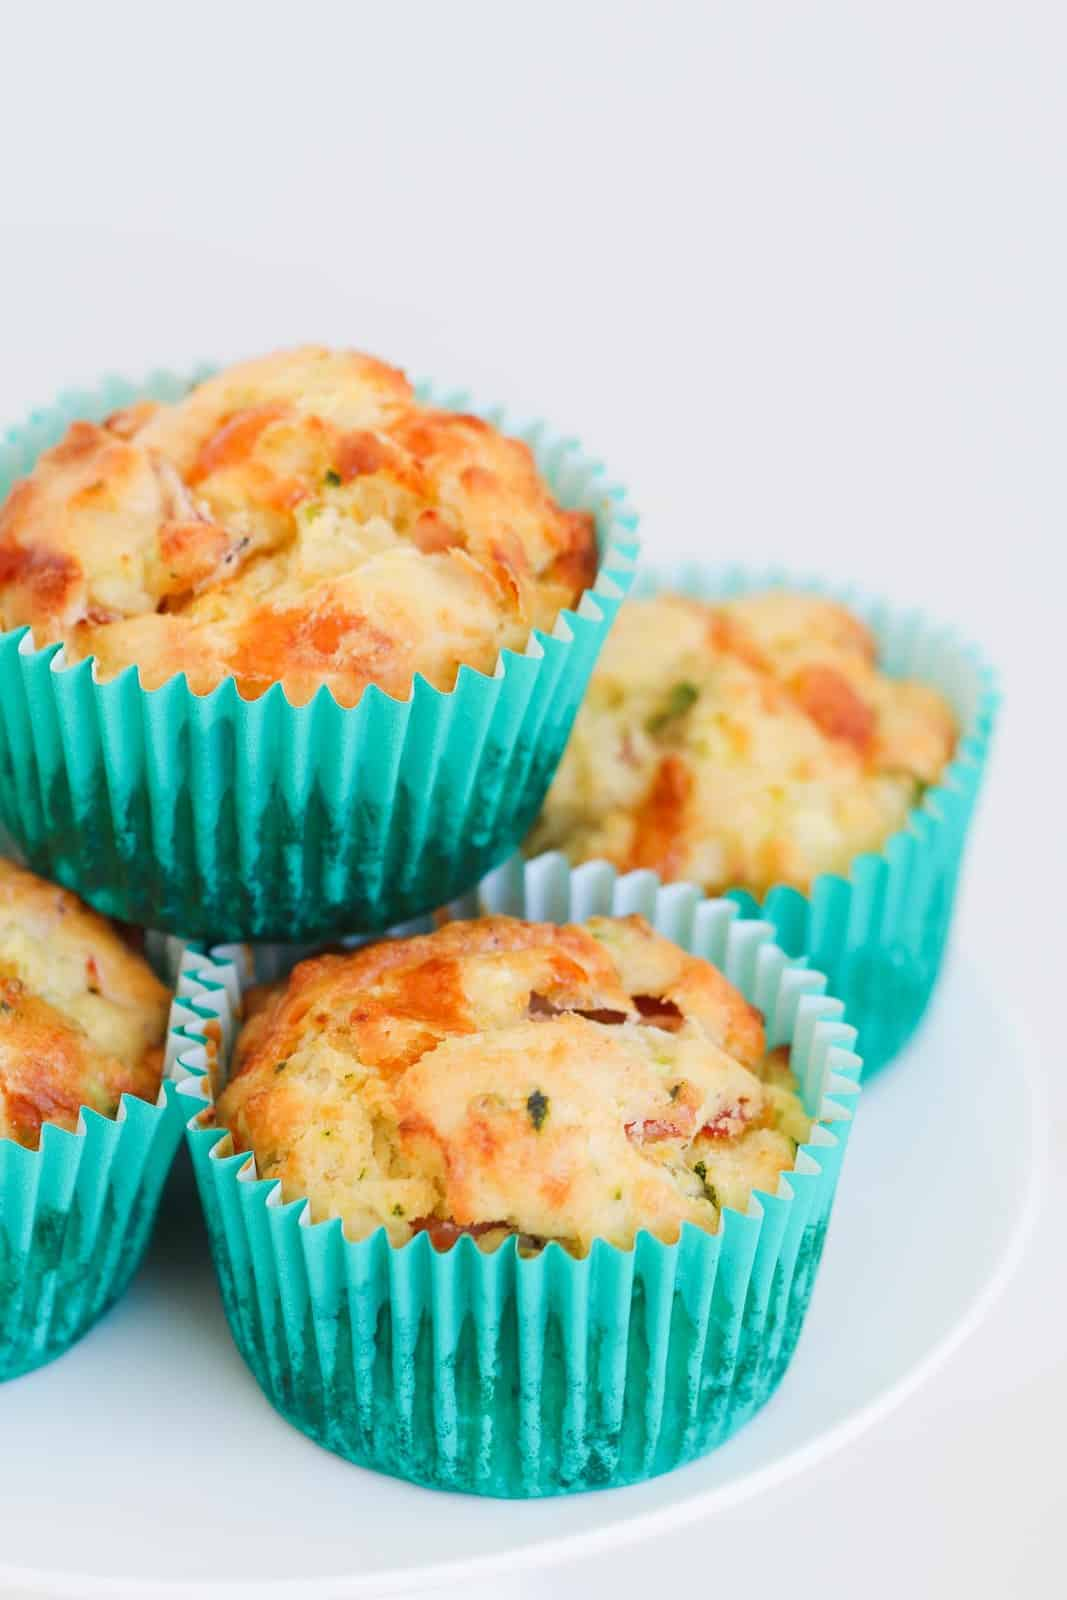 A pile of savoury muffins.